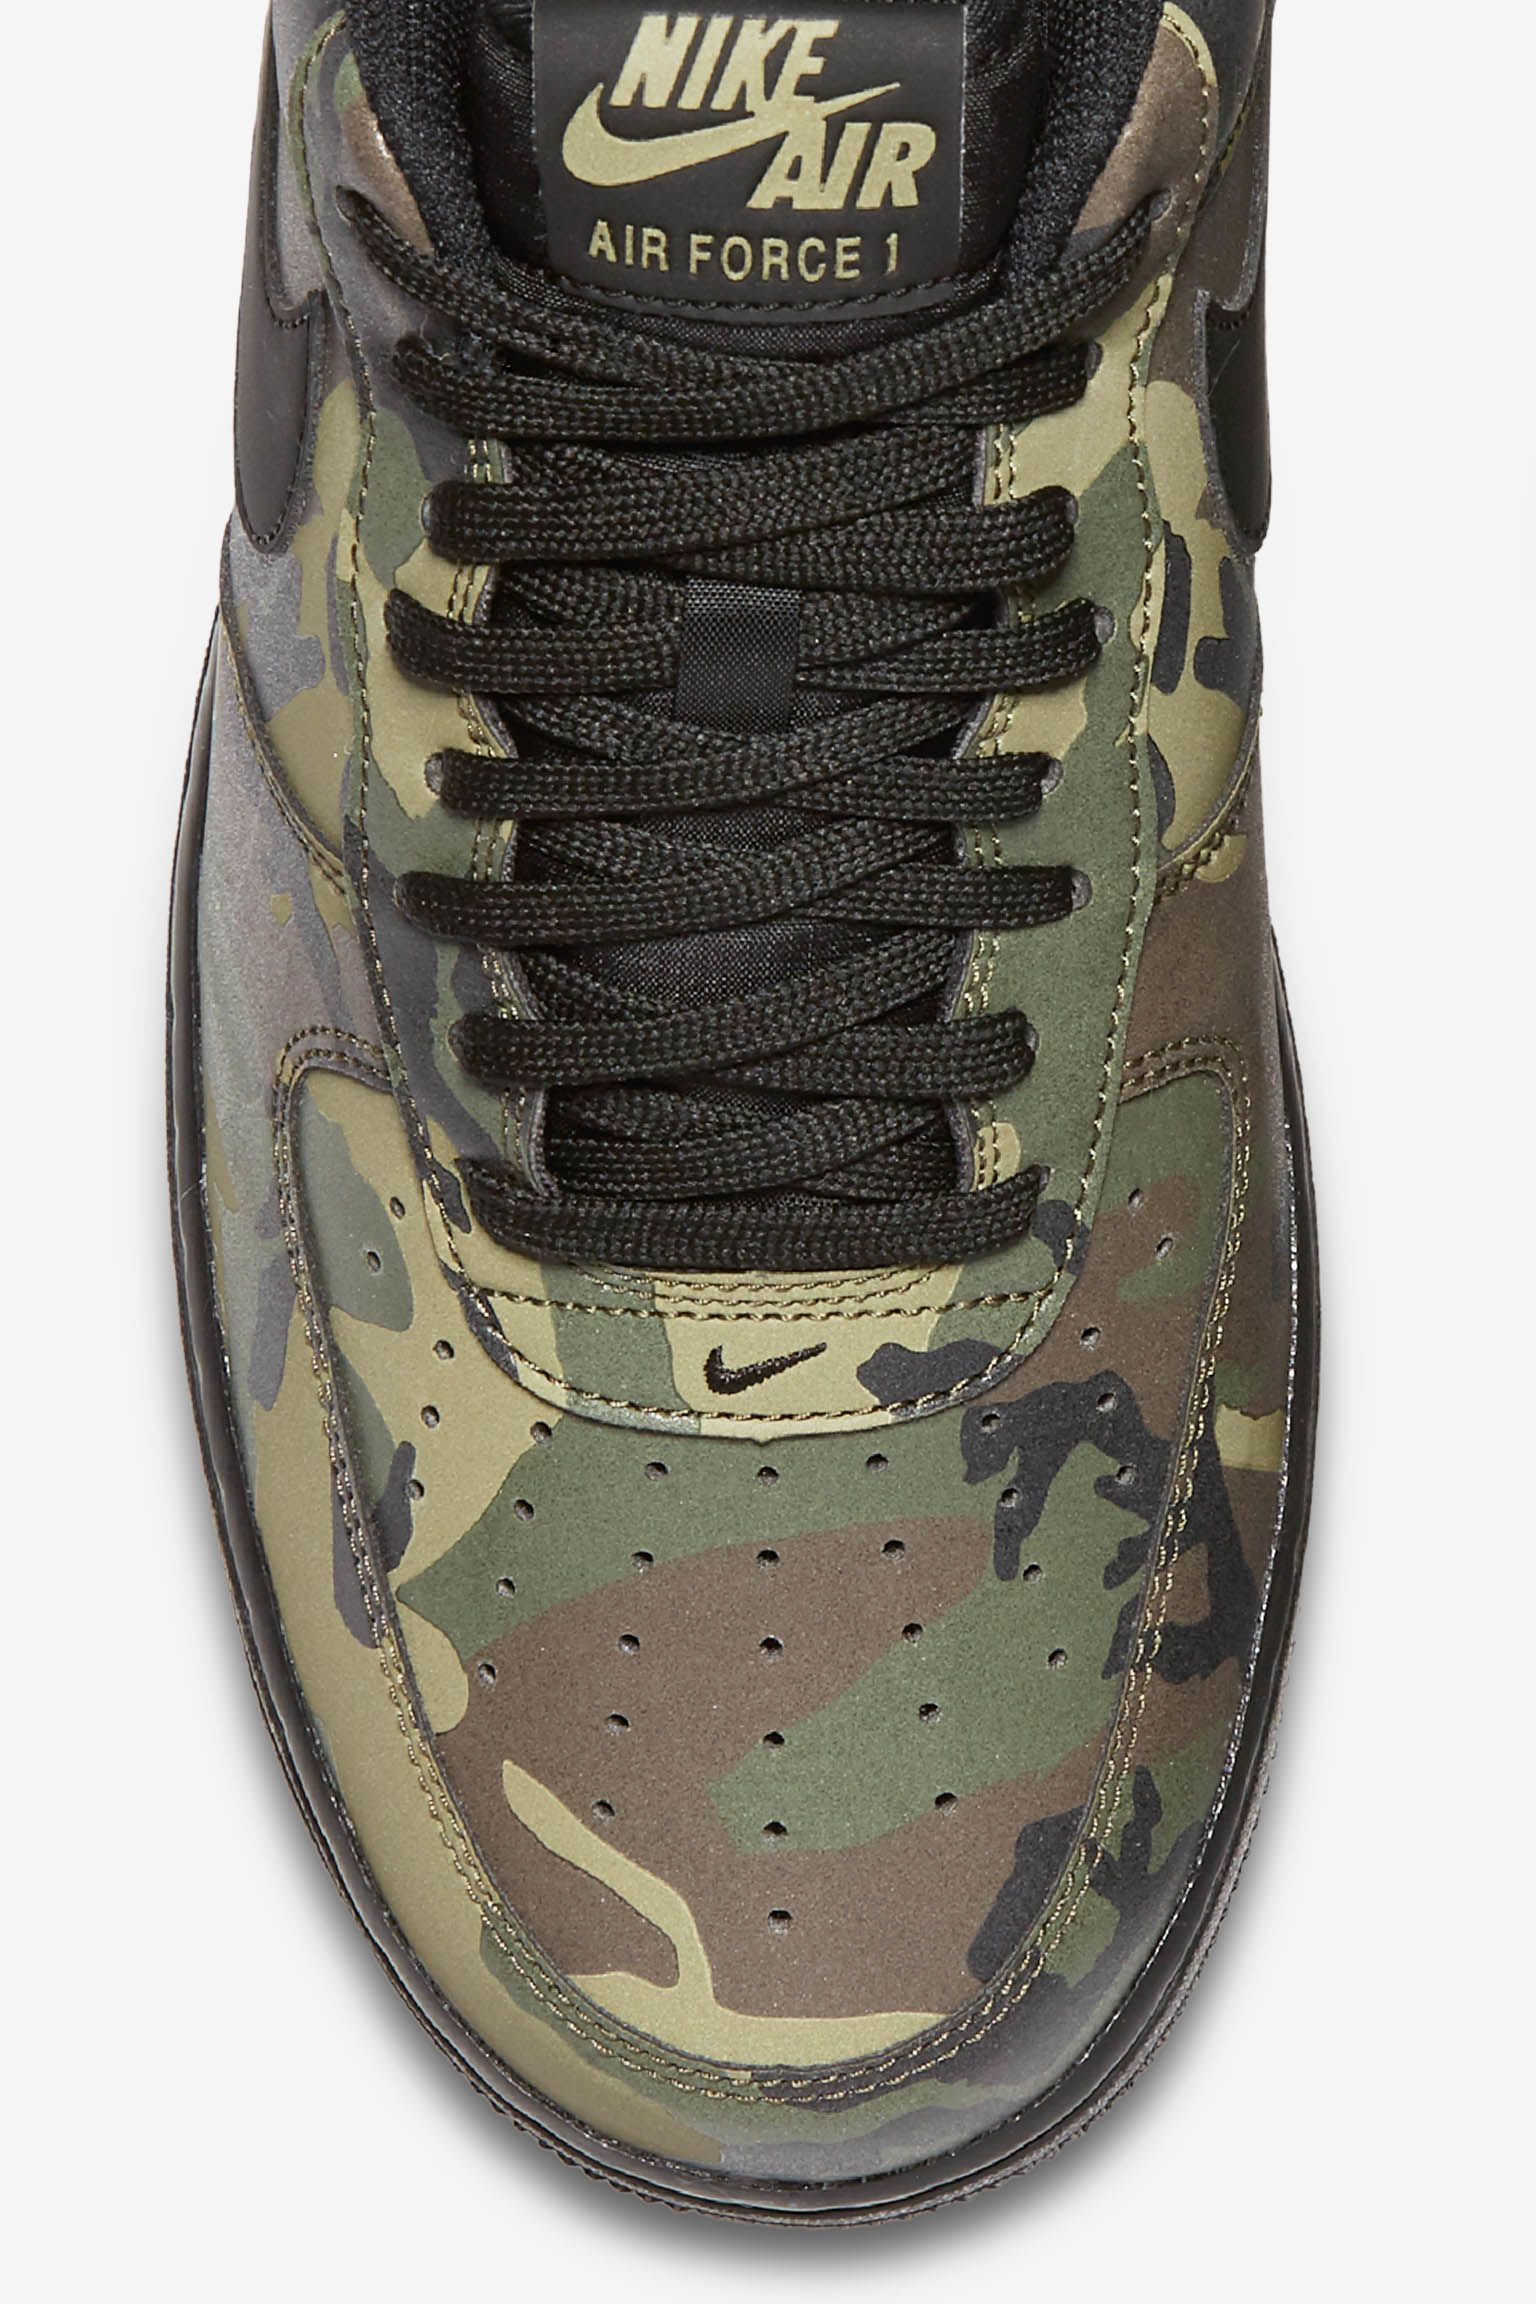 Nike Air Force 1 Low 07 'Medium Olive Camo Reflective' Release Date